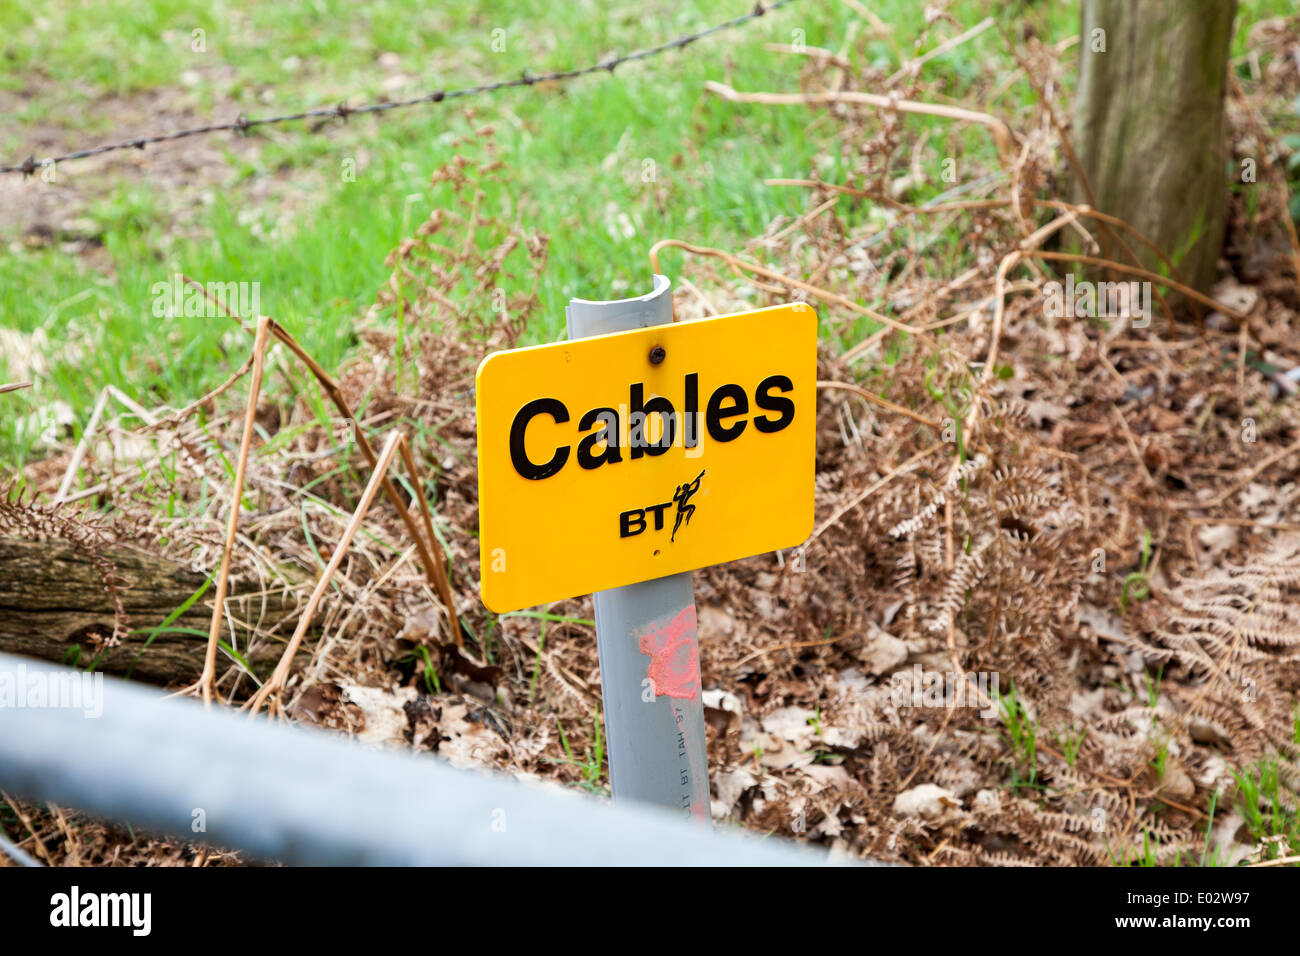 A bt or British Telecommunications sign warning that there are buried cables - Stock Image